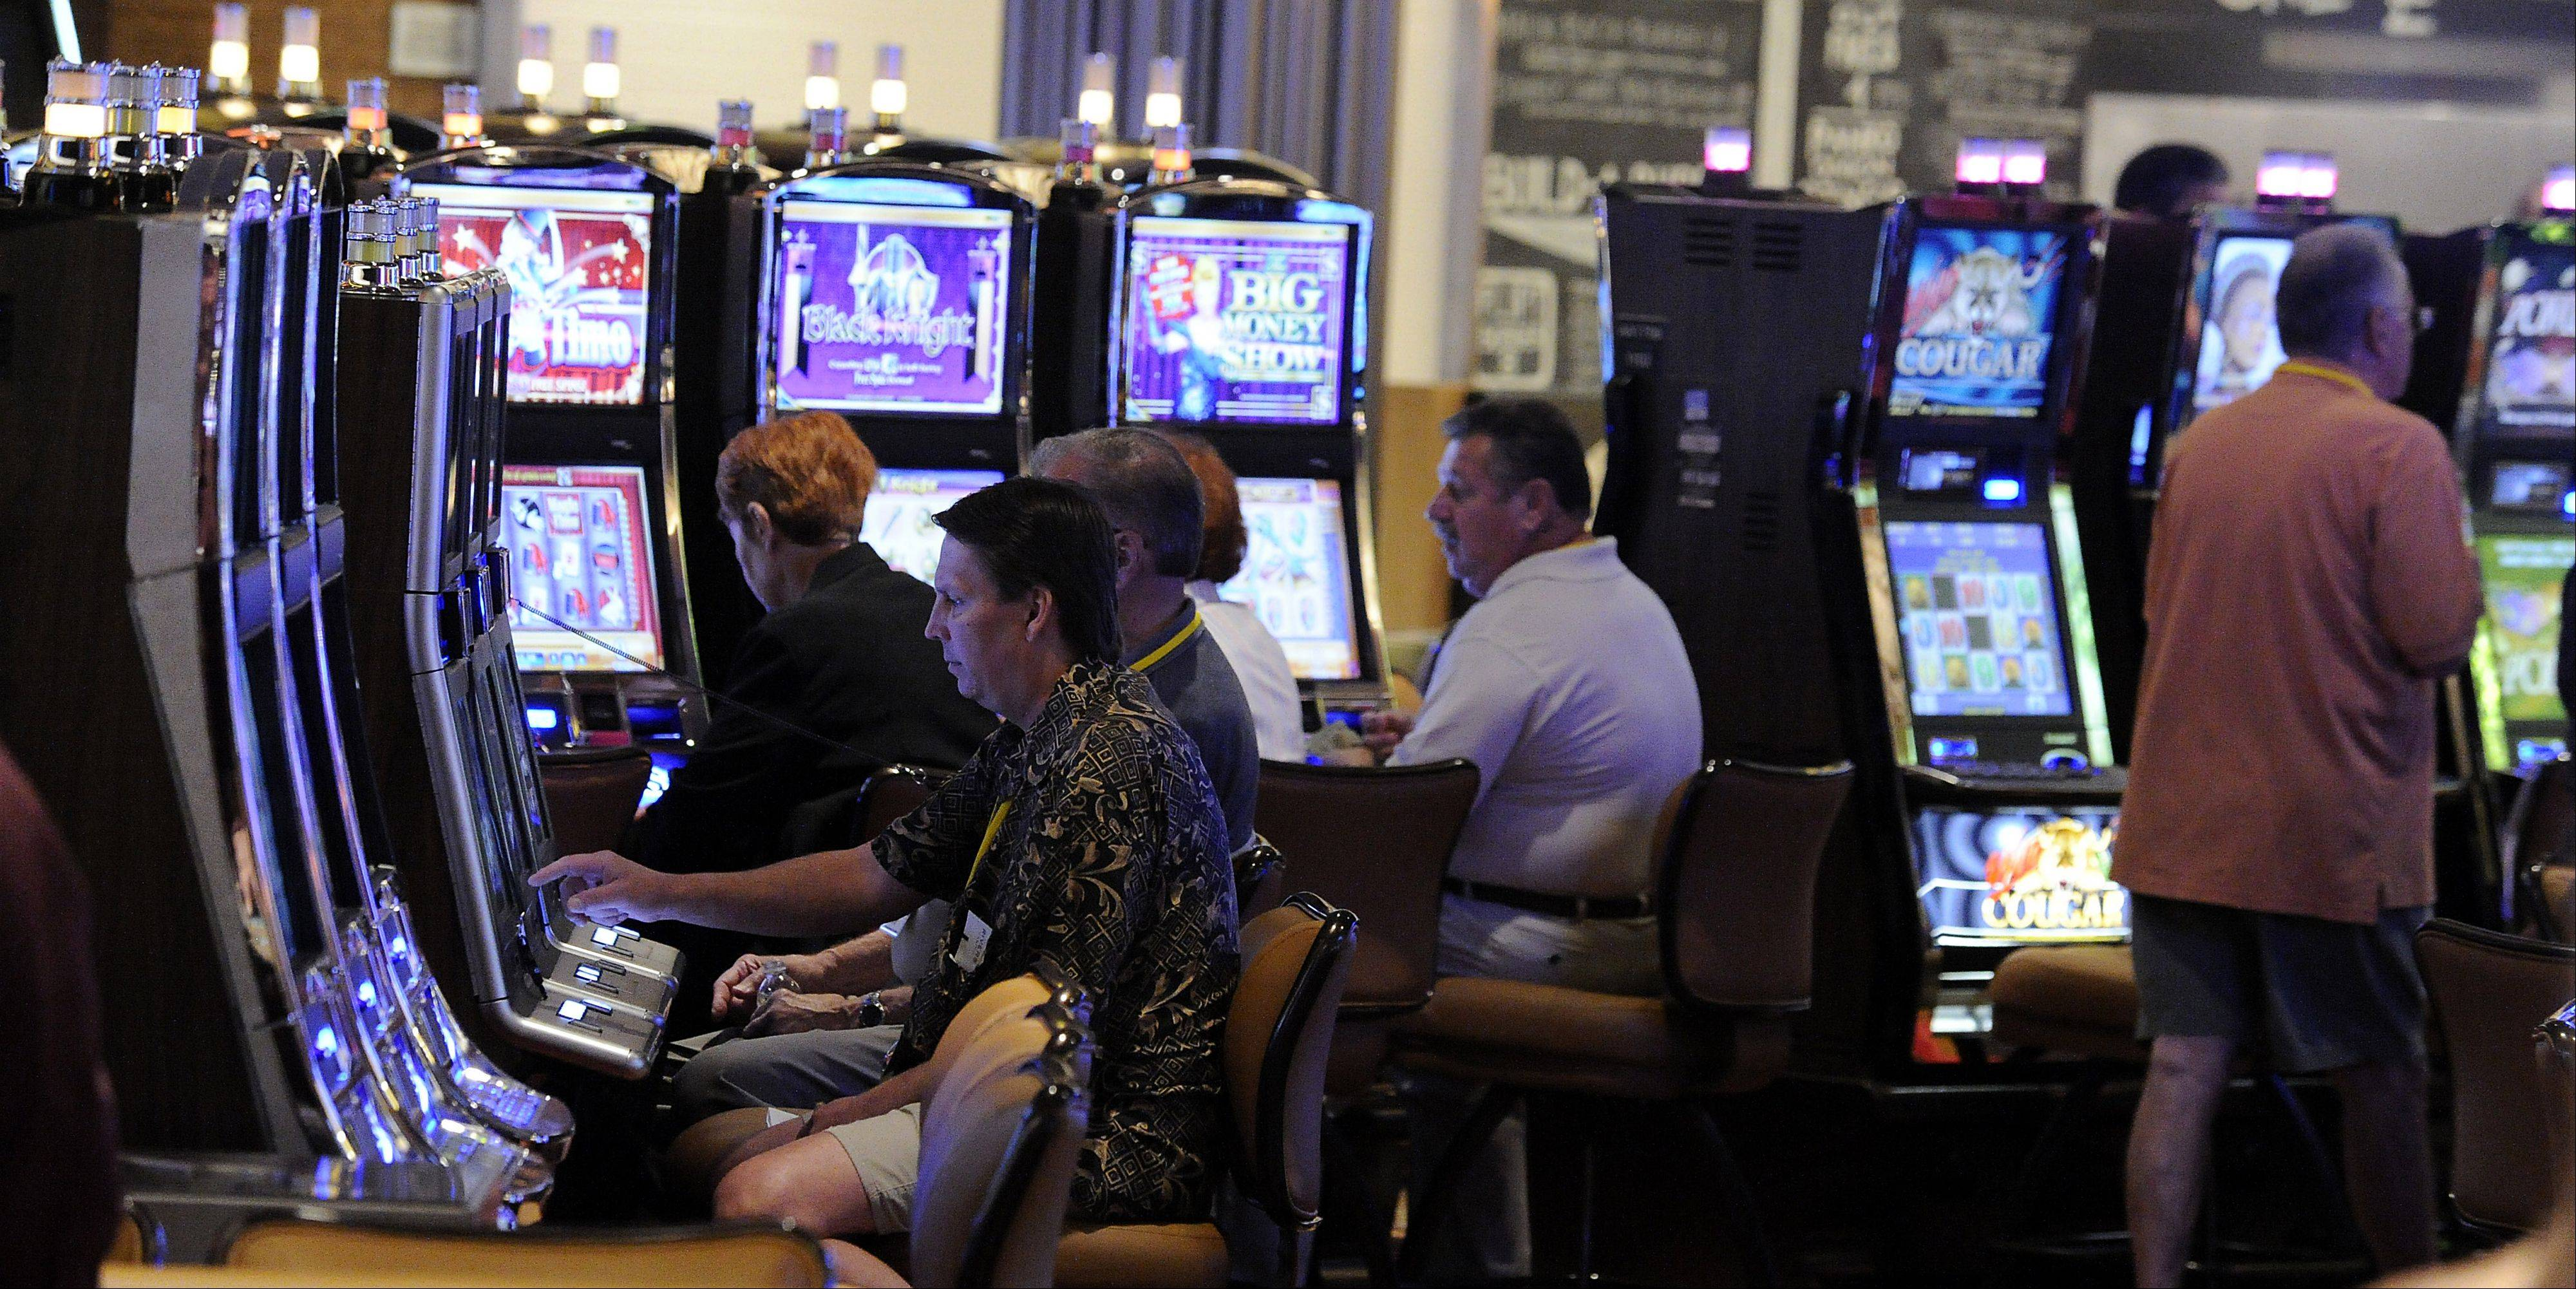 Report casts doubt on hefty gambling revenues